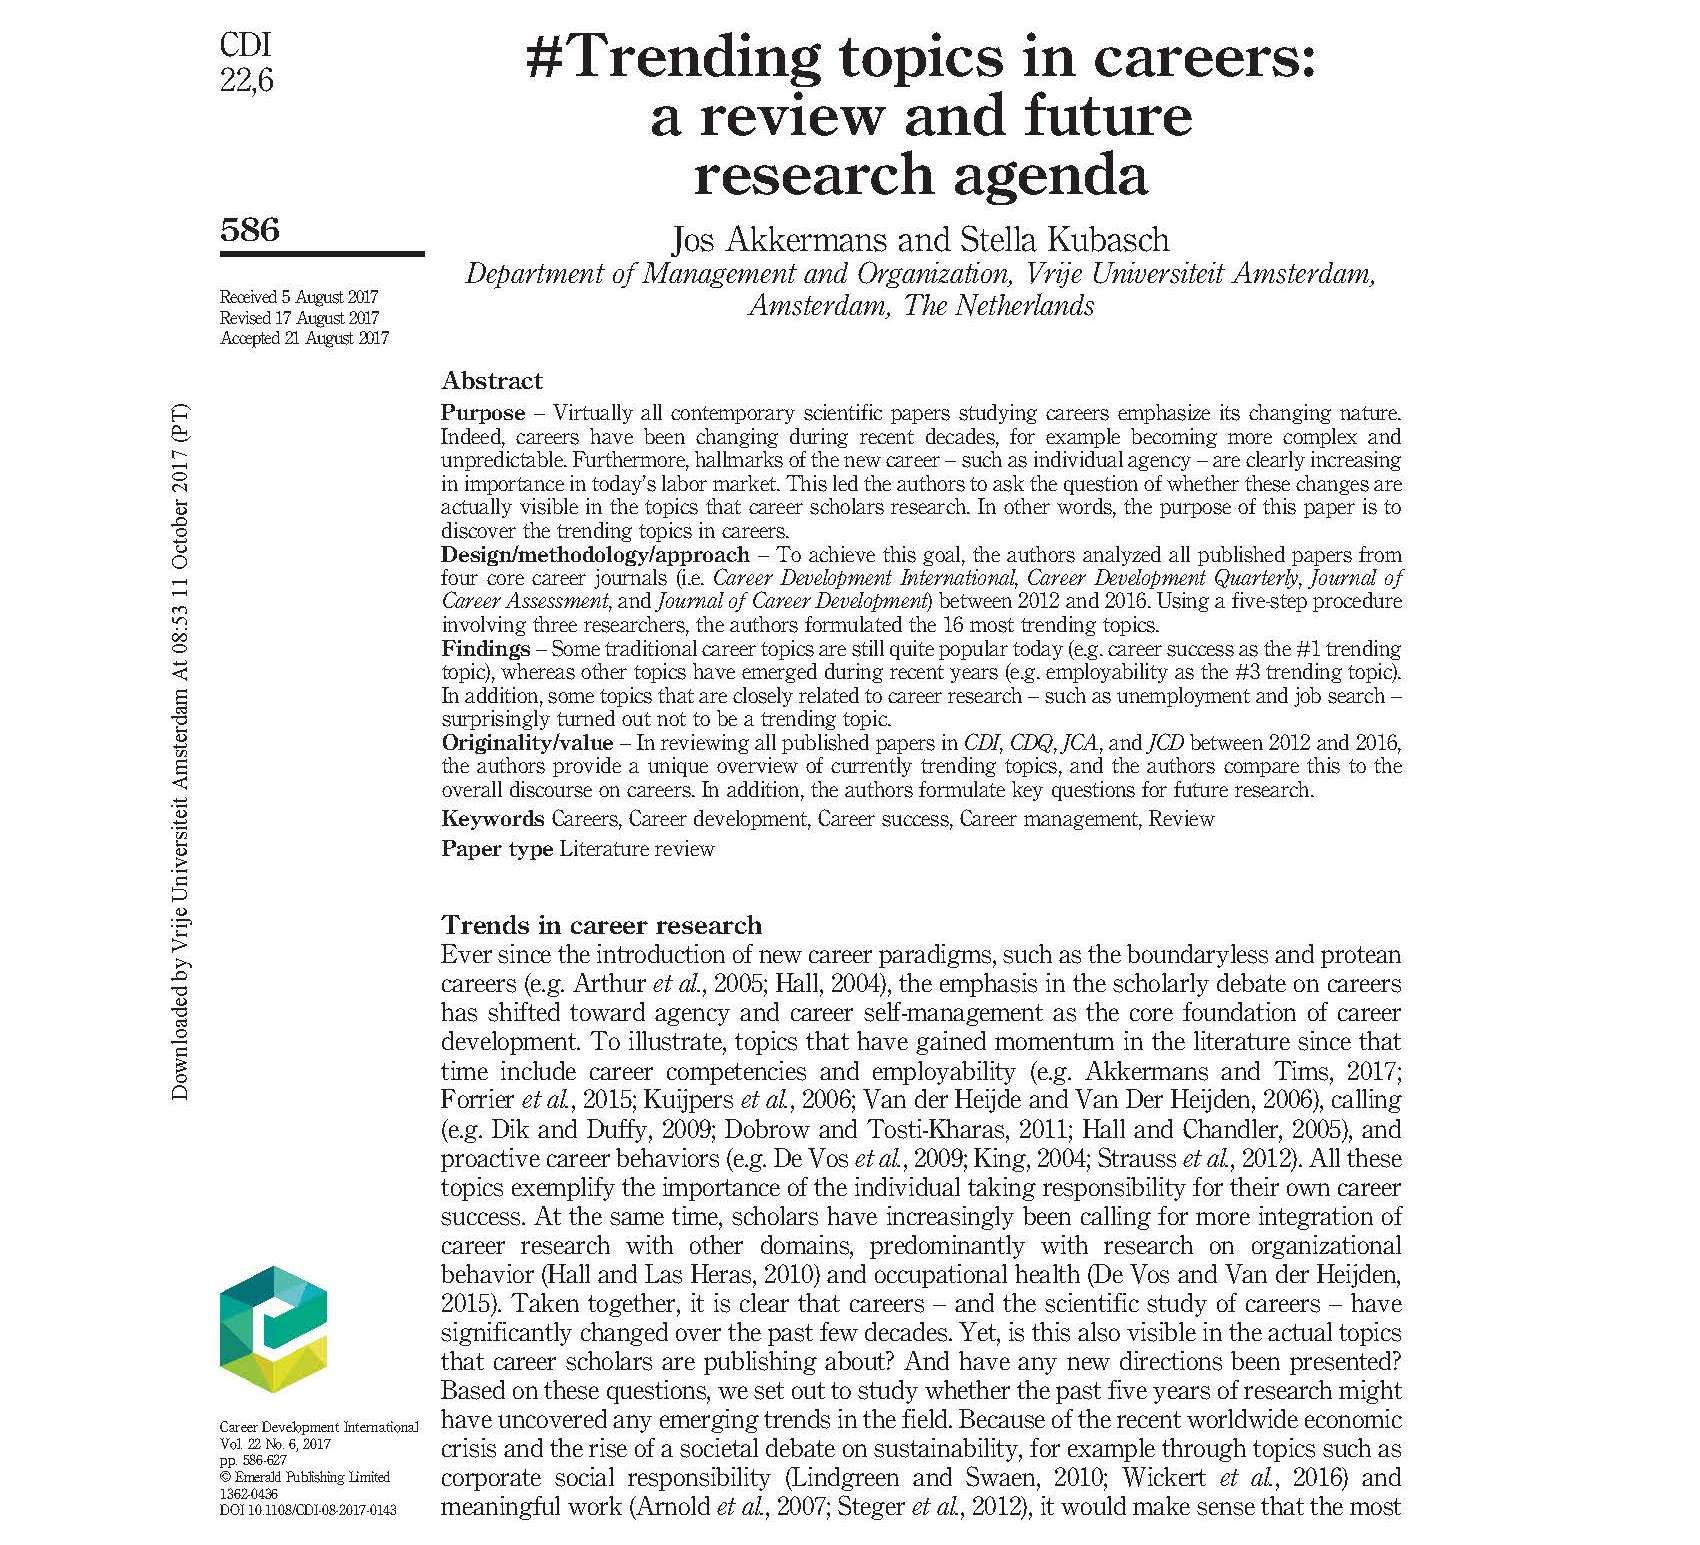 022 59e096d33a29650001209782 1620 20akkermans202620kubasch20201720 20trending20topics20in20careers Research Paper Topics For Impressive Papers Scientific High School Students Interesting 6th Graders In Physical Education Full